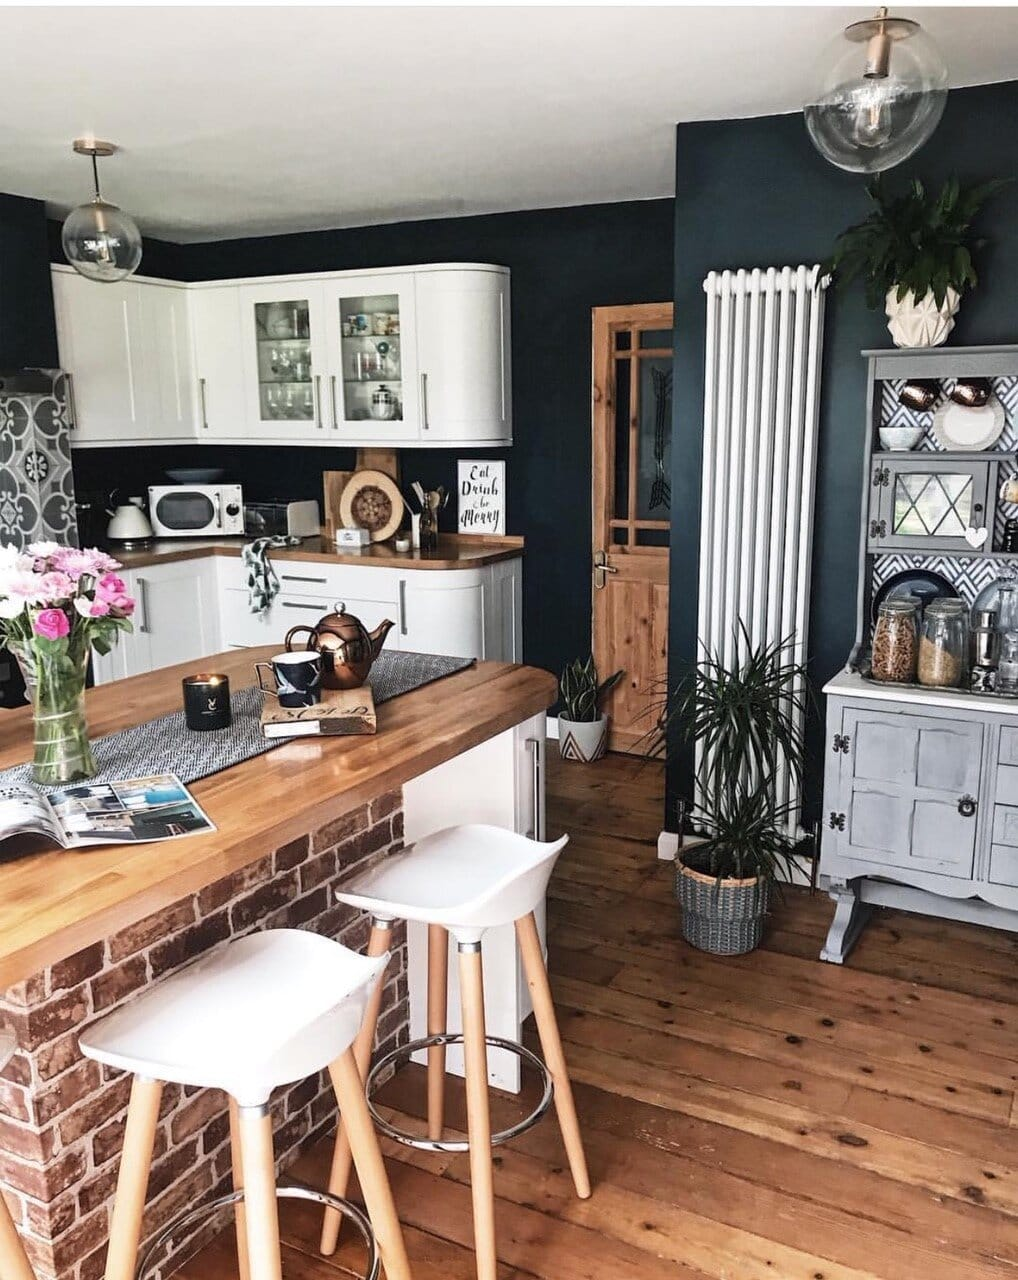 interior design, instagram, instagram trends, home decor, social media, blogging, instagram advice, blogging advice, pinterest, kitchen, kitchen island, dark interiors